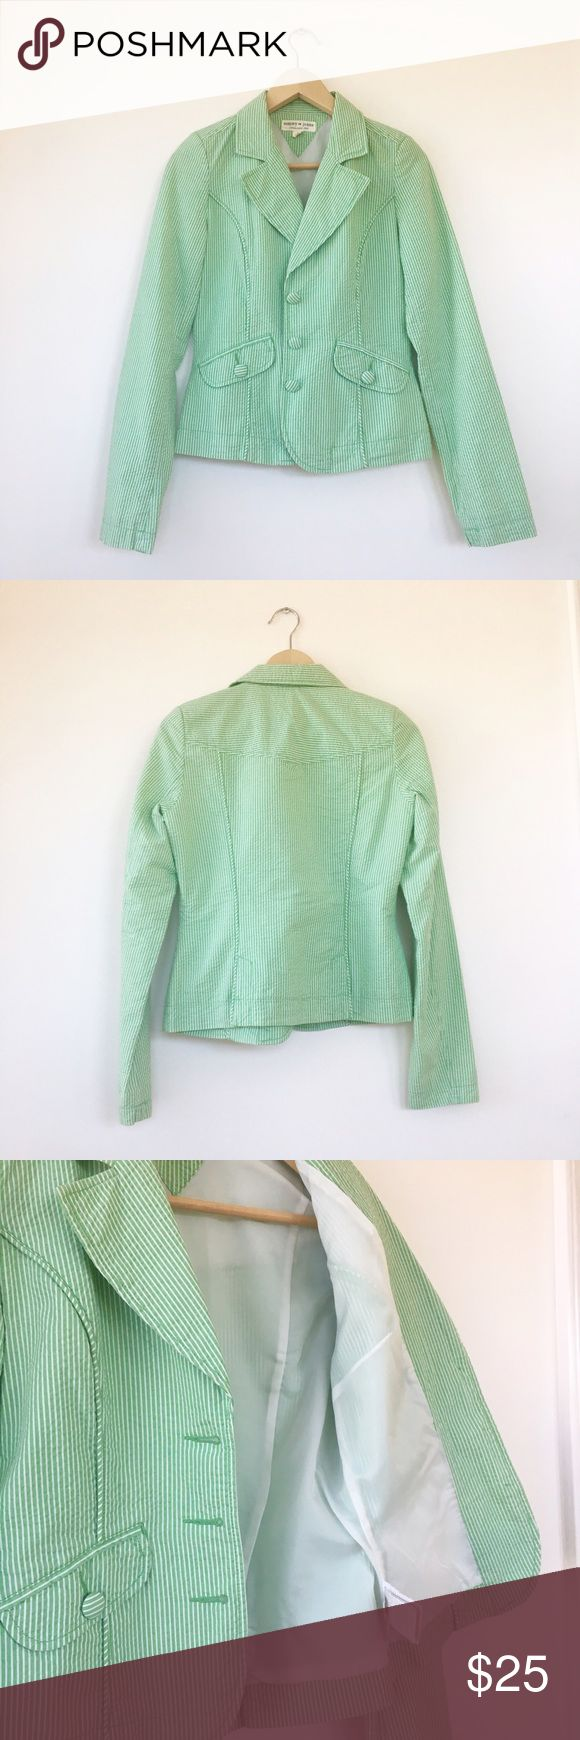 Tommy Hilfiger Striped Green Blazer A striped green blazer with cute matching buttons in excellent condition. Look put-together on a casual day or wear over a blouse for a fresh work look! 100% cotton and 100% polyester lining. Tommy Hilfiger Jackets & Coats Blazers